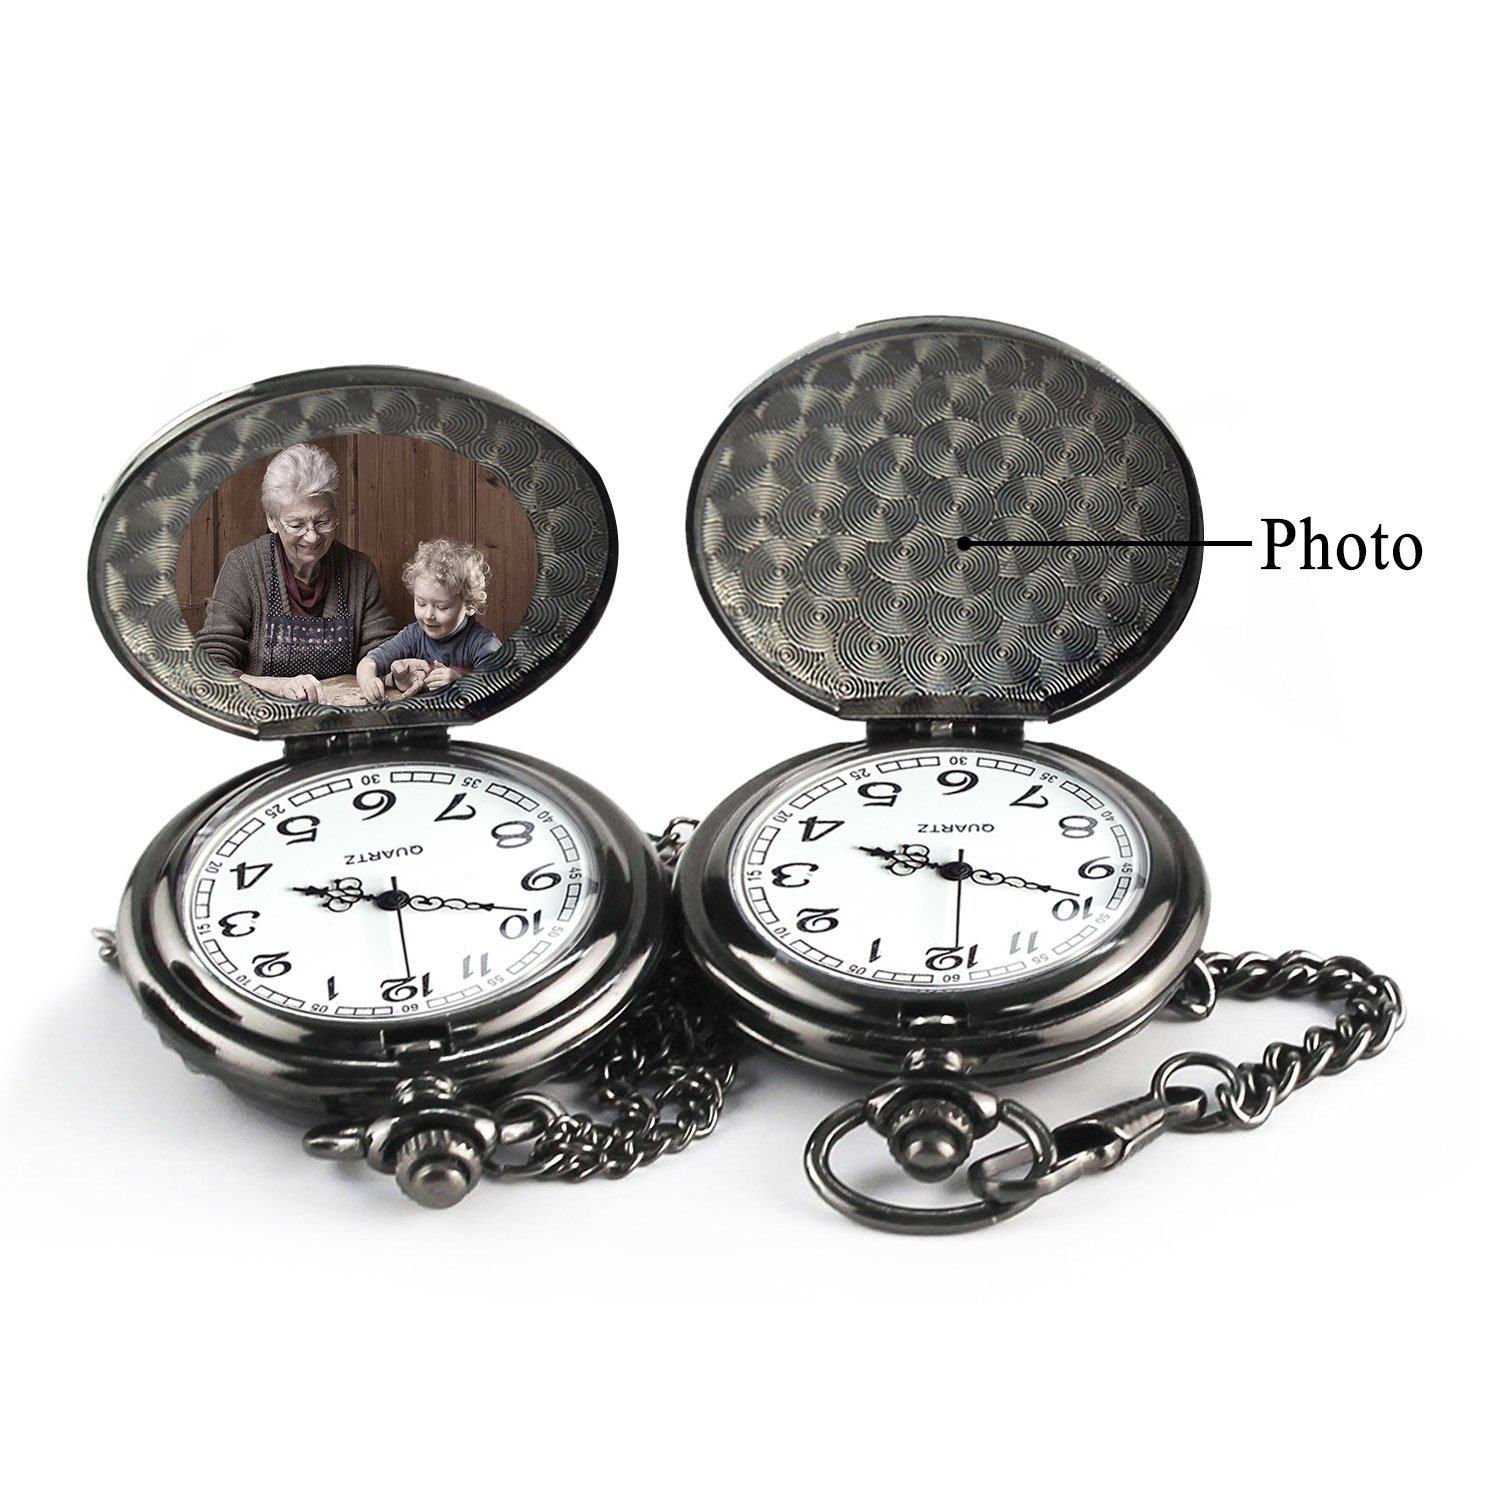 Pocket Watch ''To My GrandSon - Love Grandma(Love Grandpa)''Necklace Chain From Grandparents to Grandson Gifts with Black Gift Box By Qise (Love GrandMa Black) by Qise (Image #2)